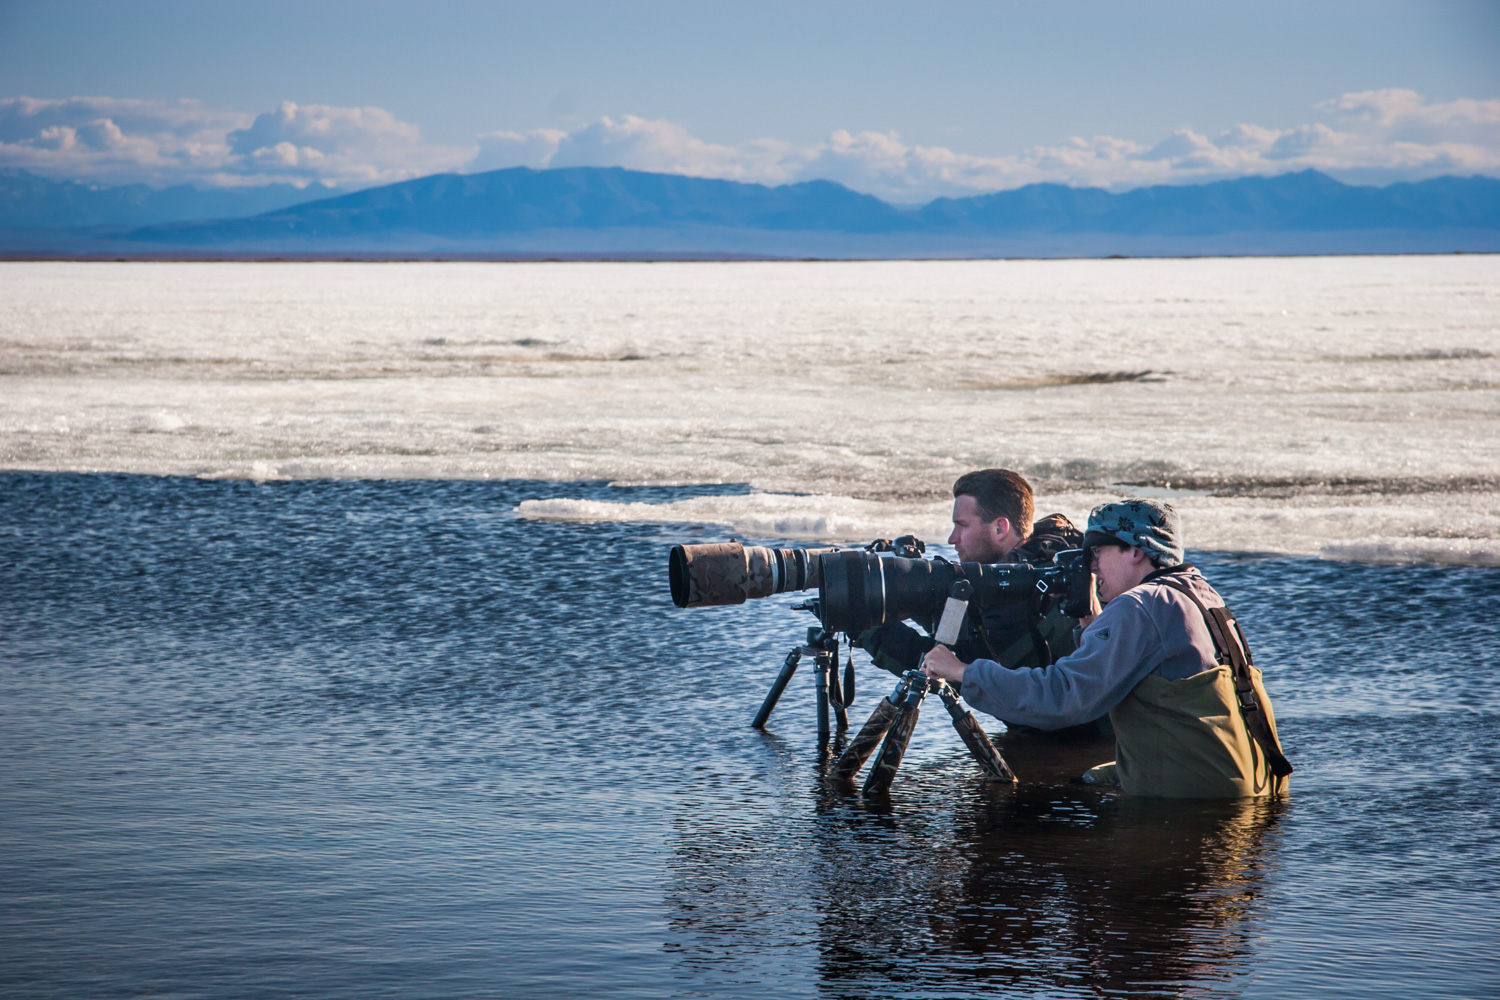 A Guide to Photographing Birds and Wildlife in a Wetland Area - 2 photographers with big lenses in the water